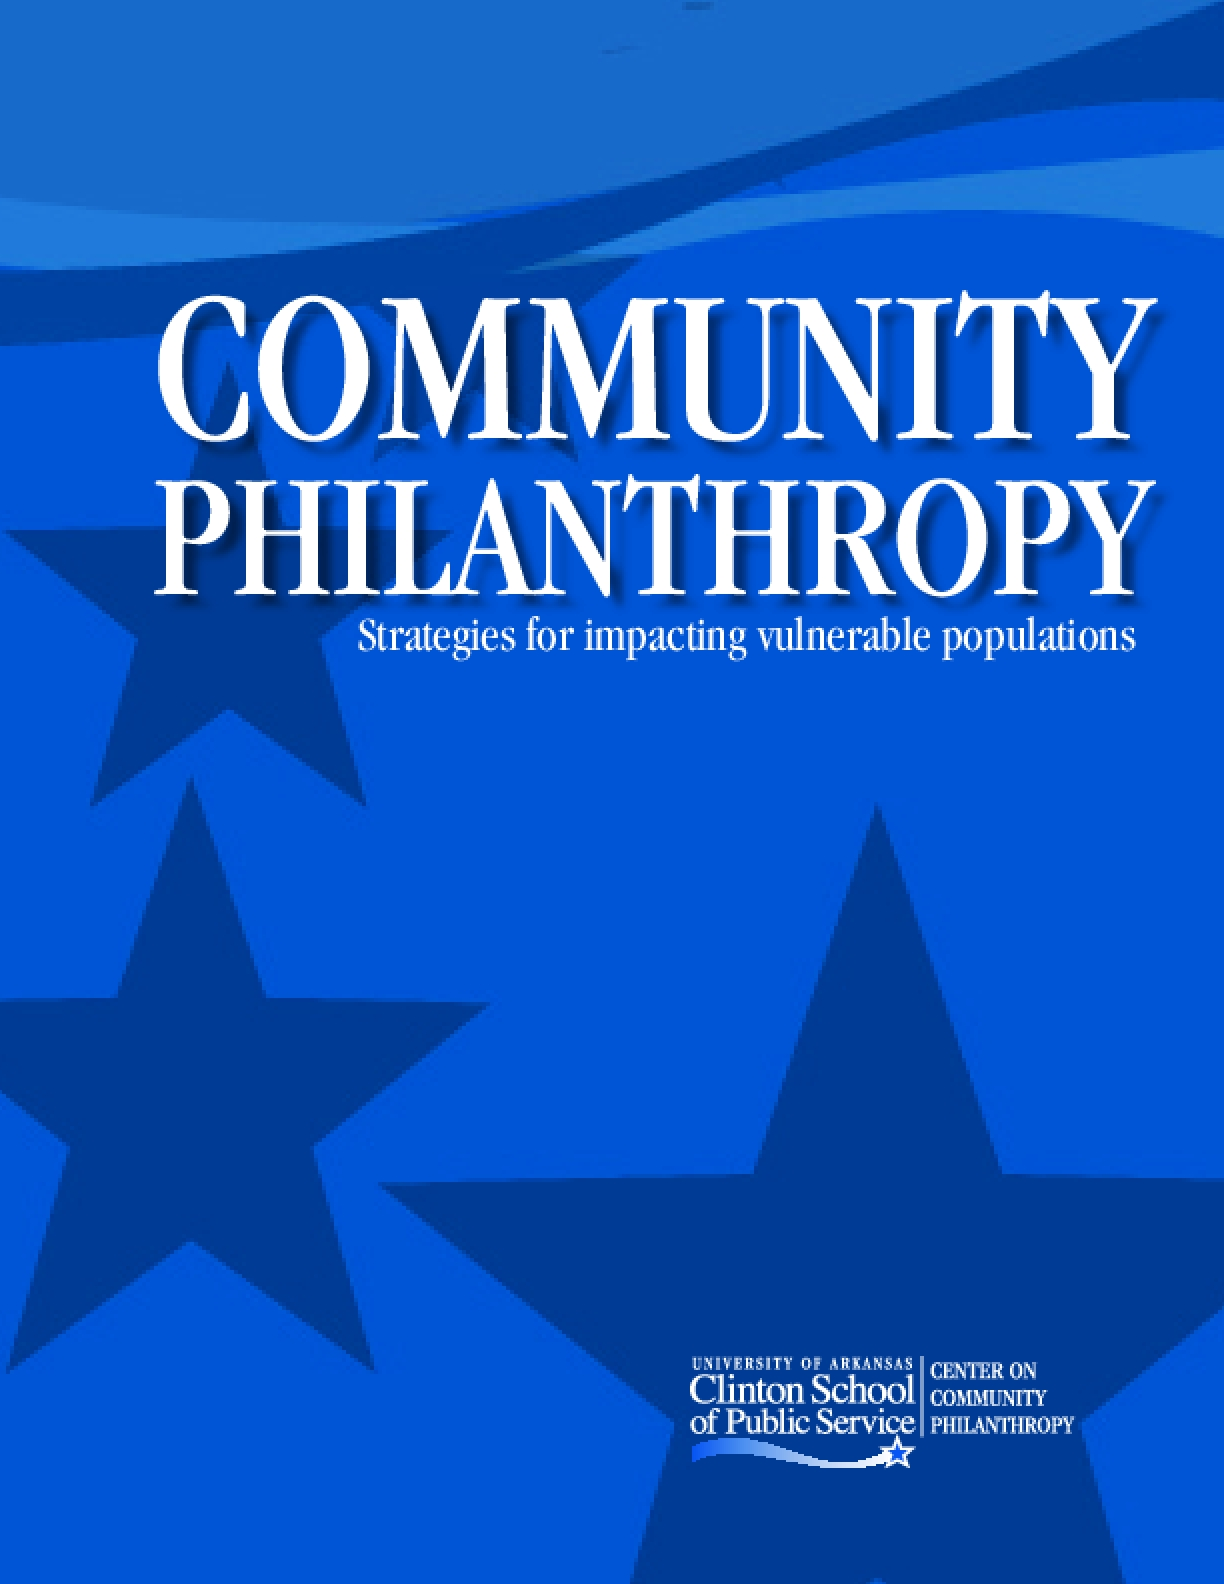 Community Philanthropy: Strategies for Impacting Vulnerable Populations